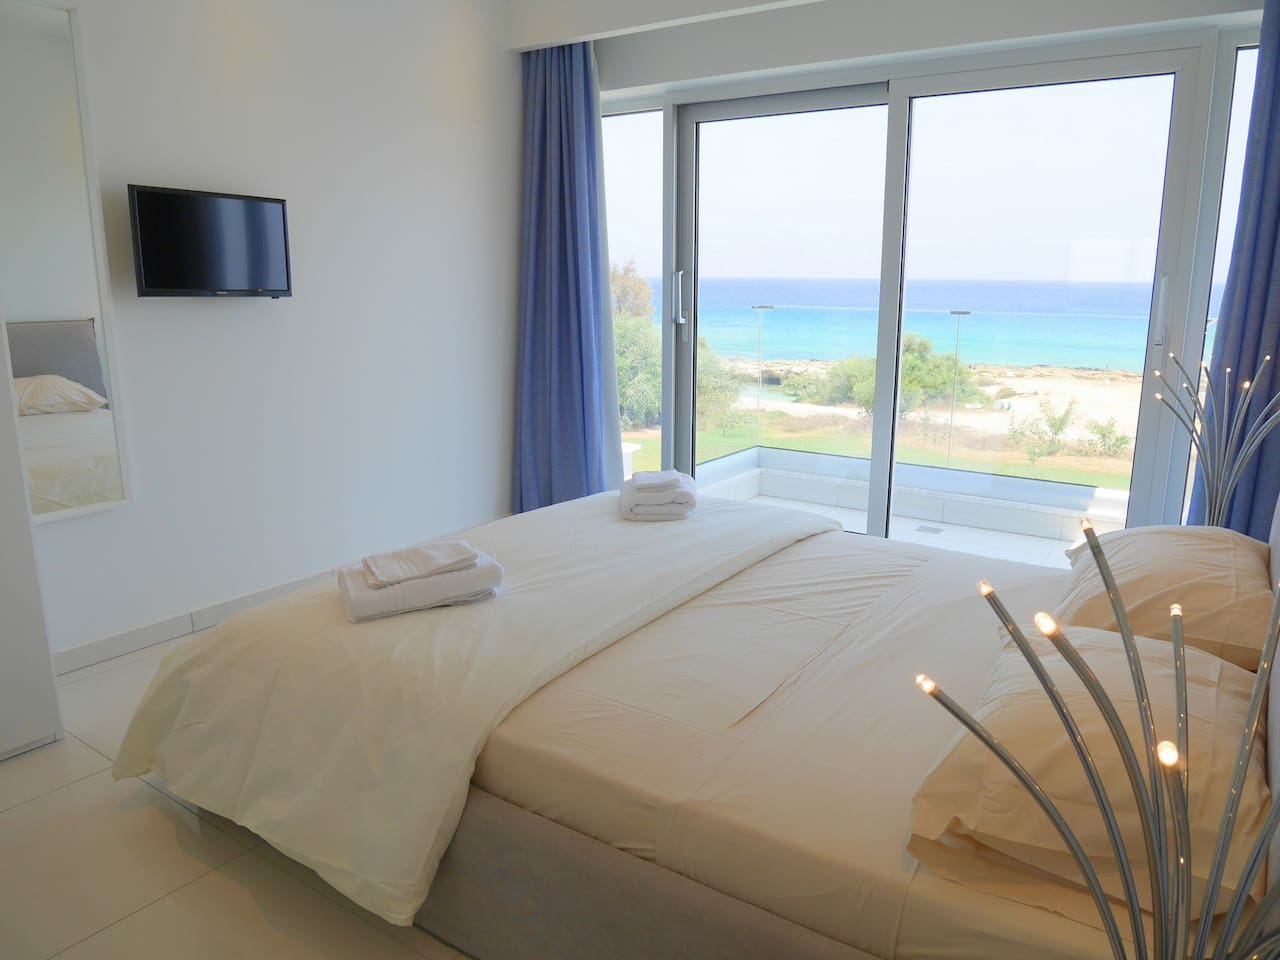 Apartment 2 Bed Luxury Apt with Large Communal Pool - B3-101 photo 26059207